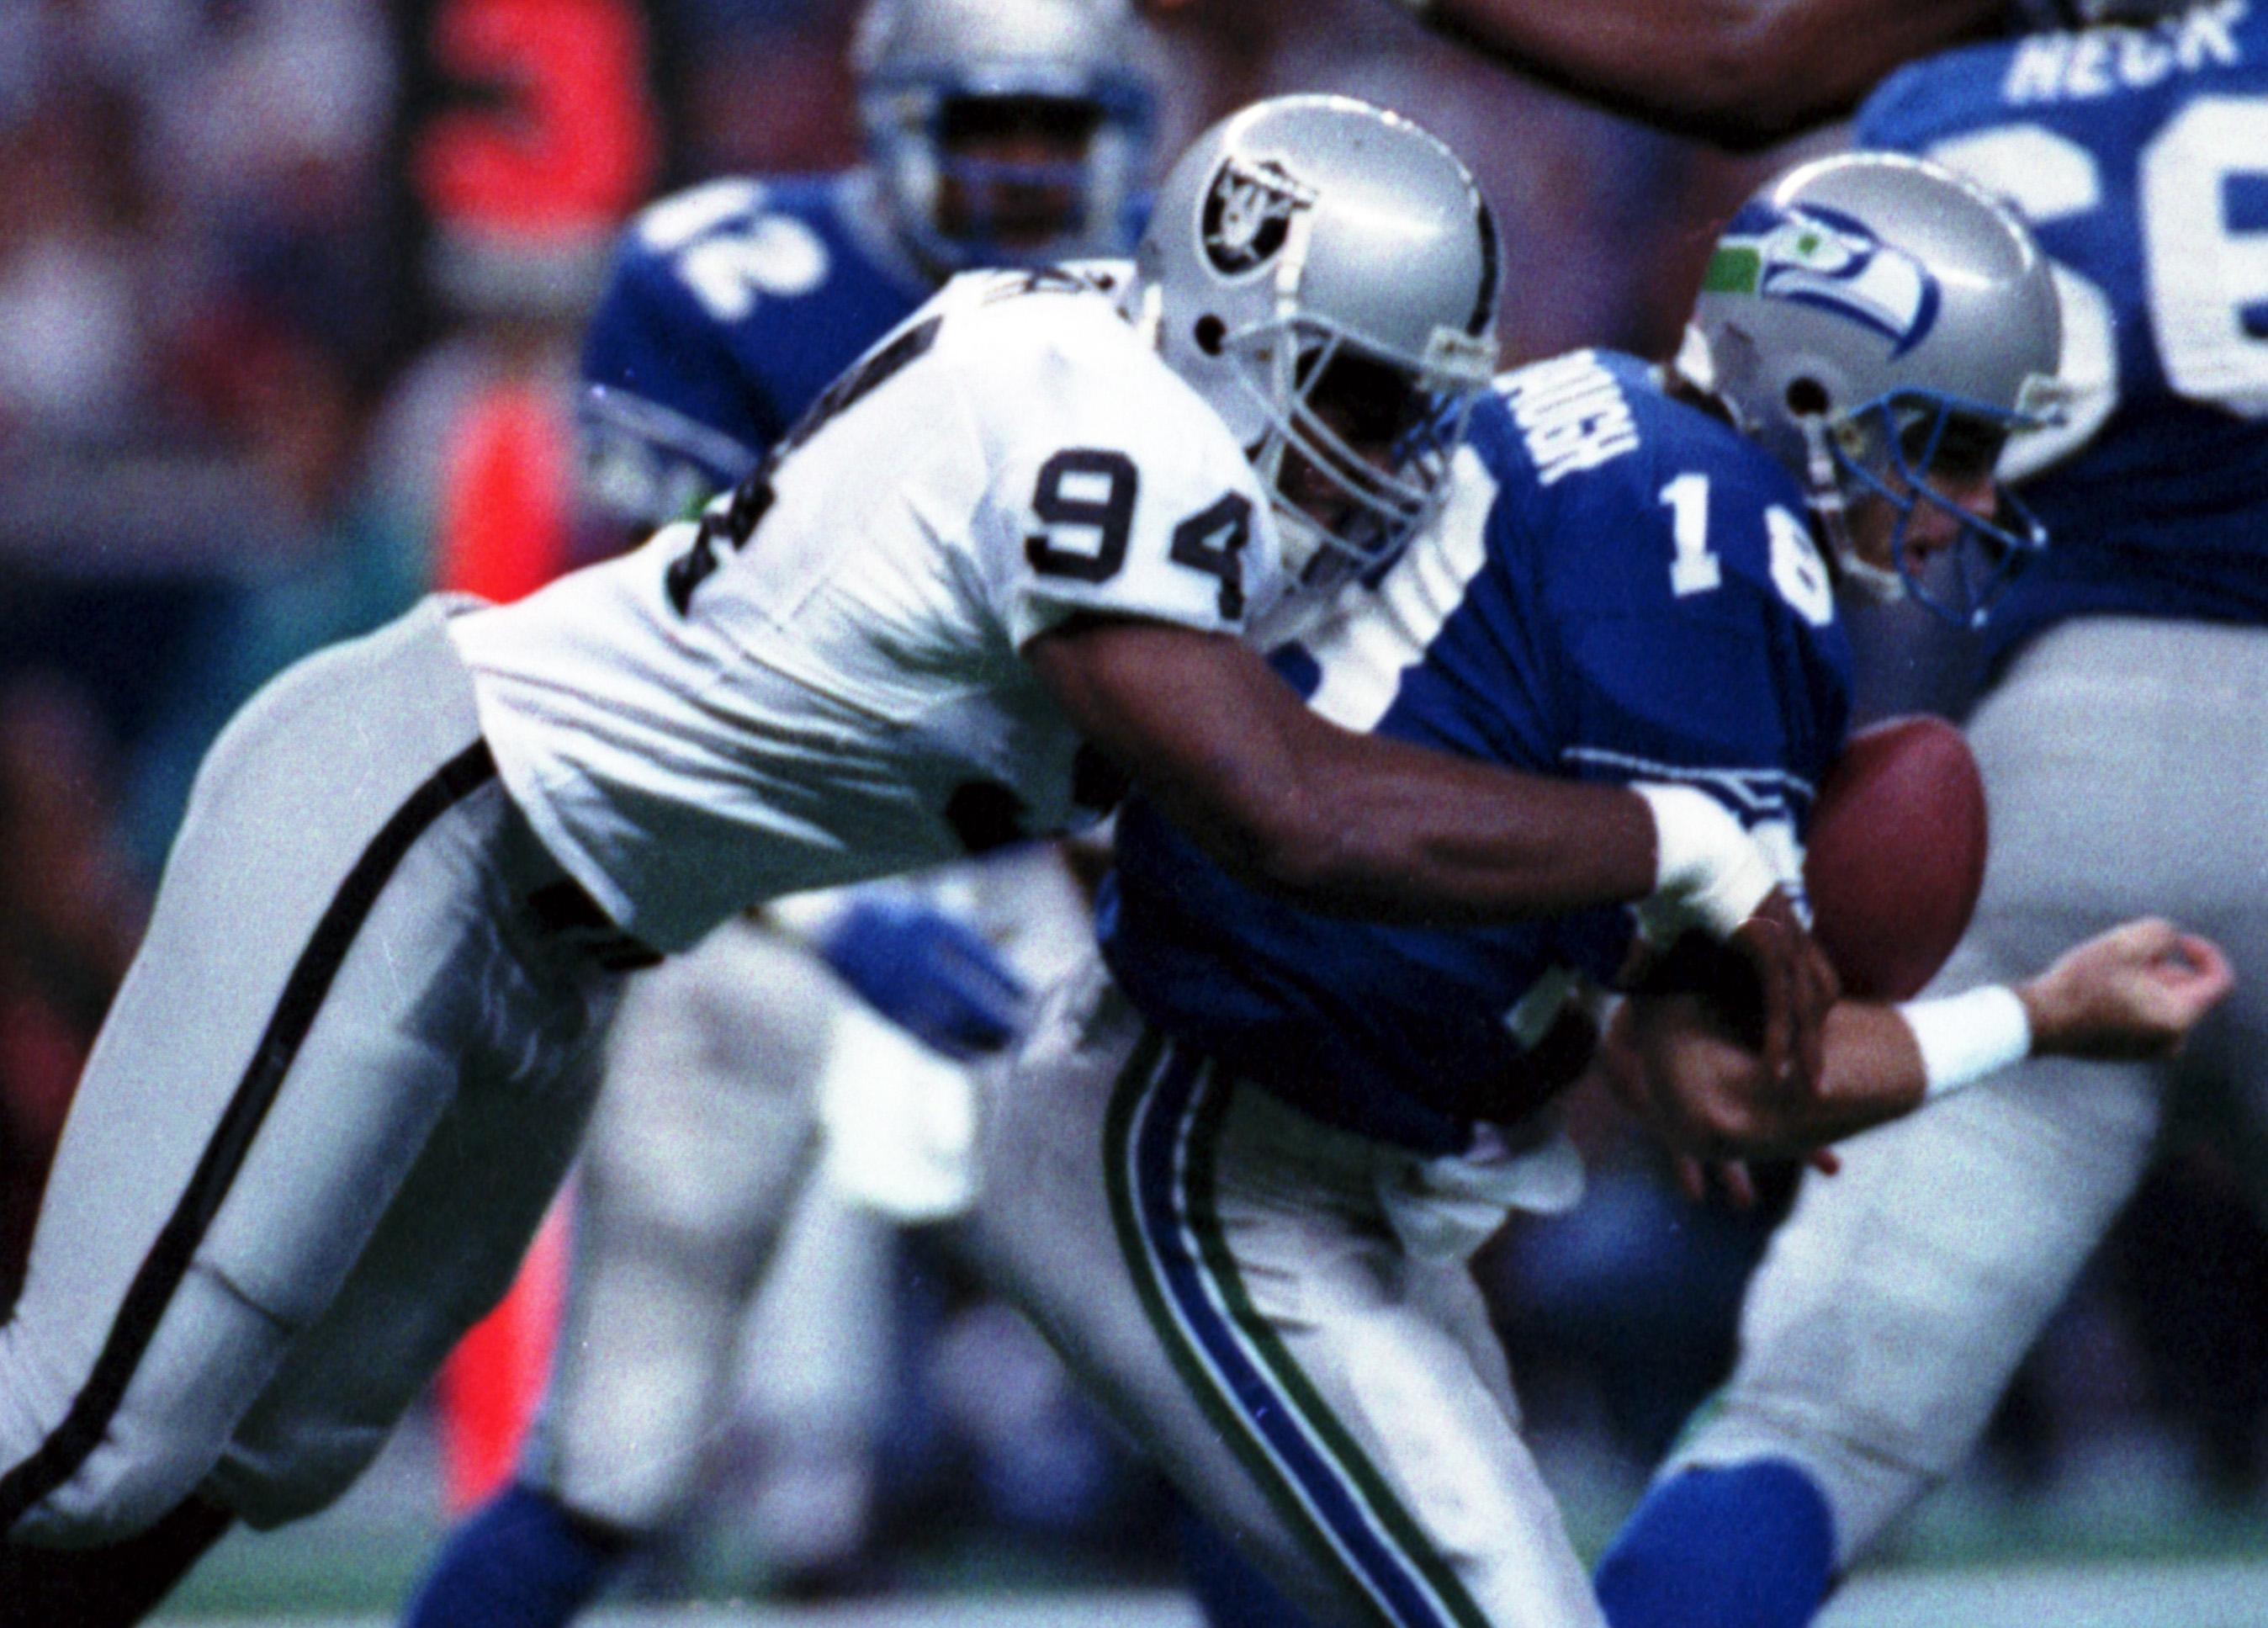 FILE - In this Oct. 18, 1992, file photo, Los Angeles Raiders' Anthony Smith (94) sacks Seattle Seahawks quarterback Stan Gelbaugh during the second quarter of an NFL football game in Seattle. Smith, a former defensive end with the Oakland and Los Angeles